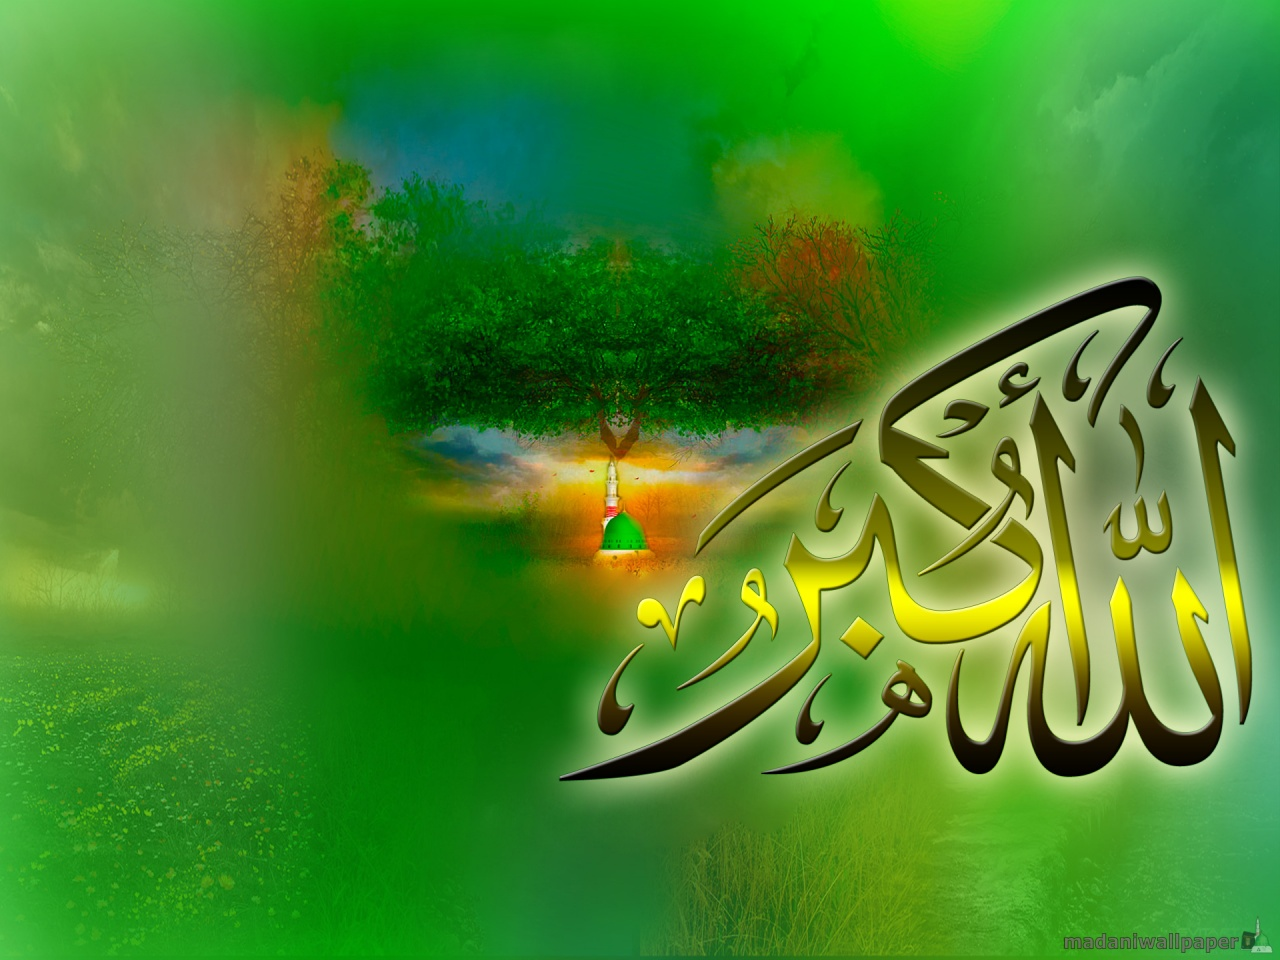 http://2.bp.blogspot.com/-3cKbWwQpQME/UKF3KfSzL_I/AAAAAAAADK8/YwpbtSX58Cg/s1600/allah_o_akbar_green_background_wallpaper-1280x960.jpg